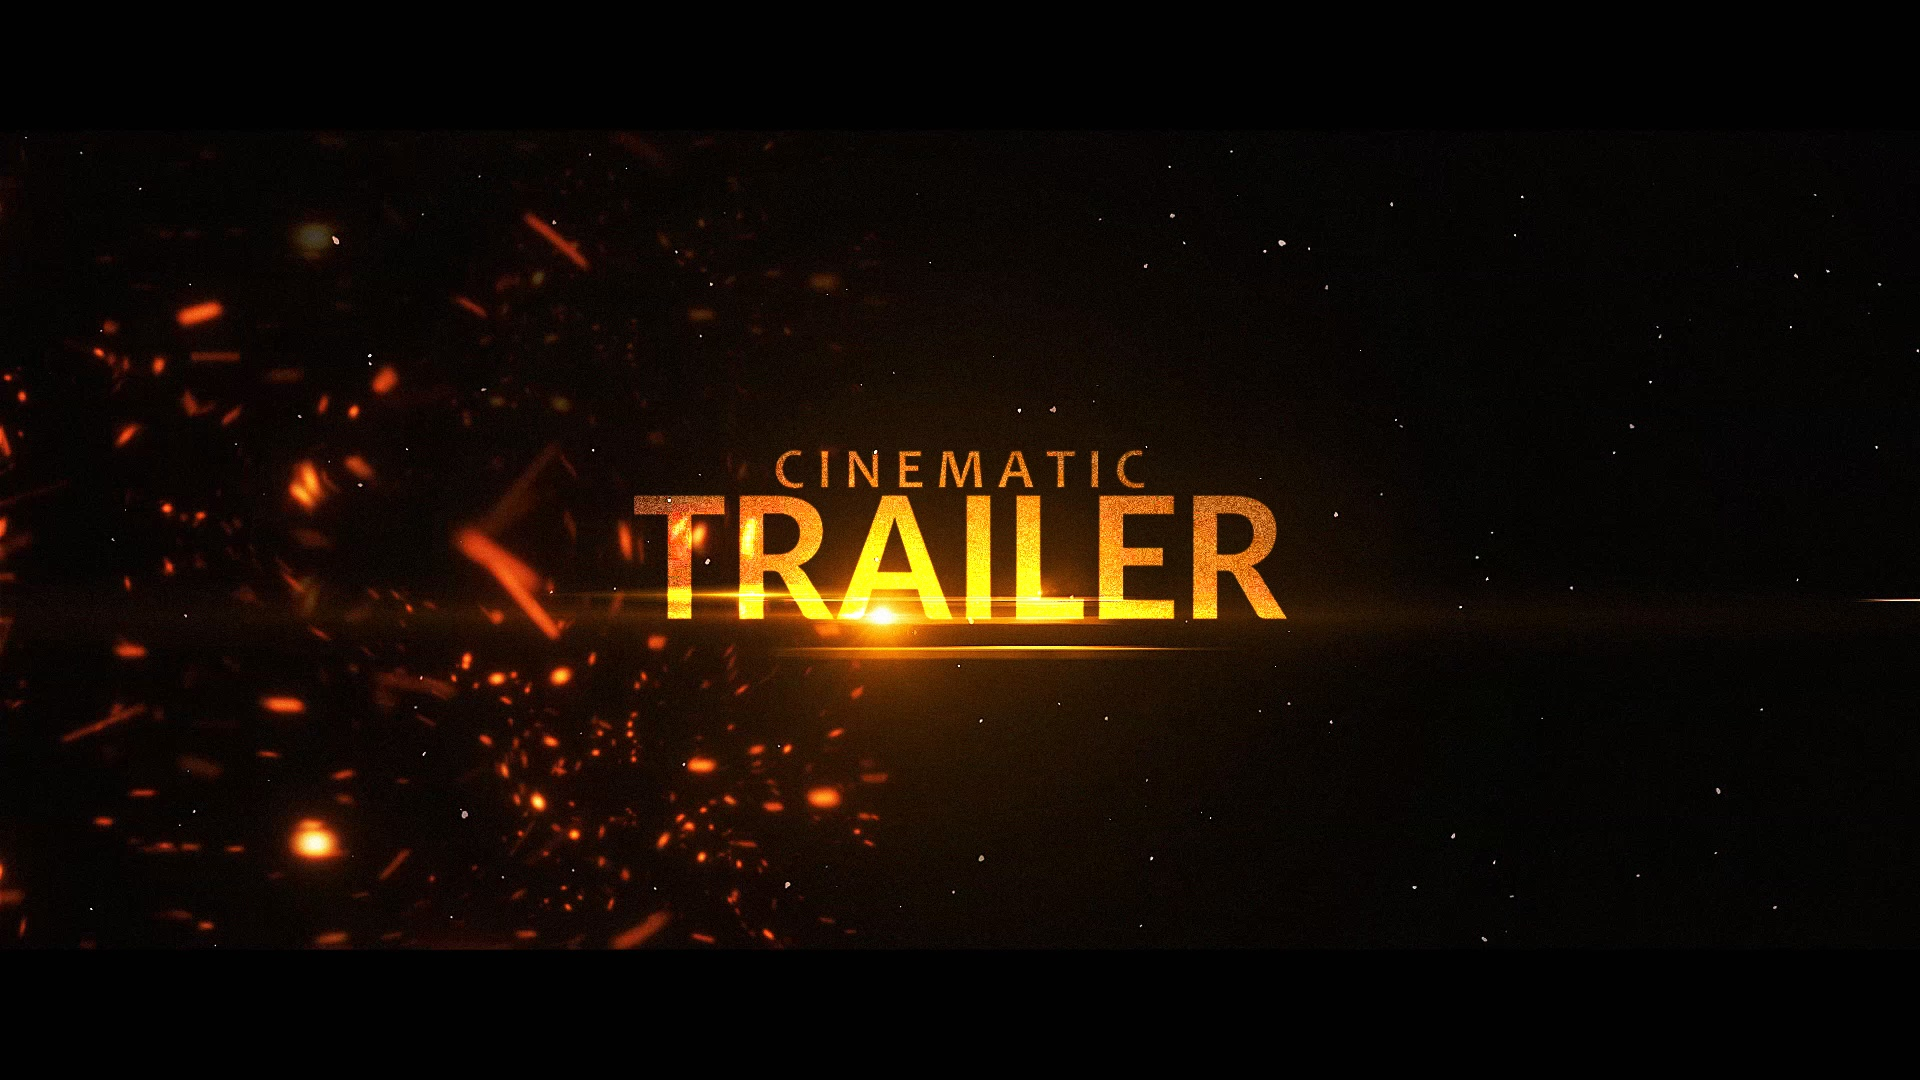 Download cinematic trailer intro template 213 sony vegas for Sony vegas pro 9 templates free download